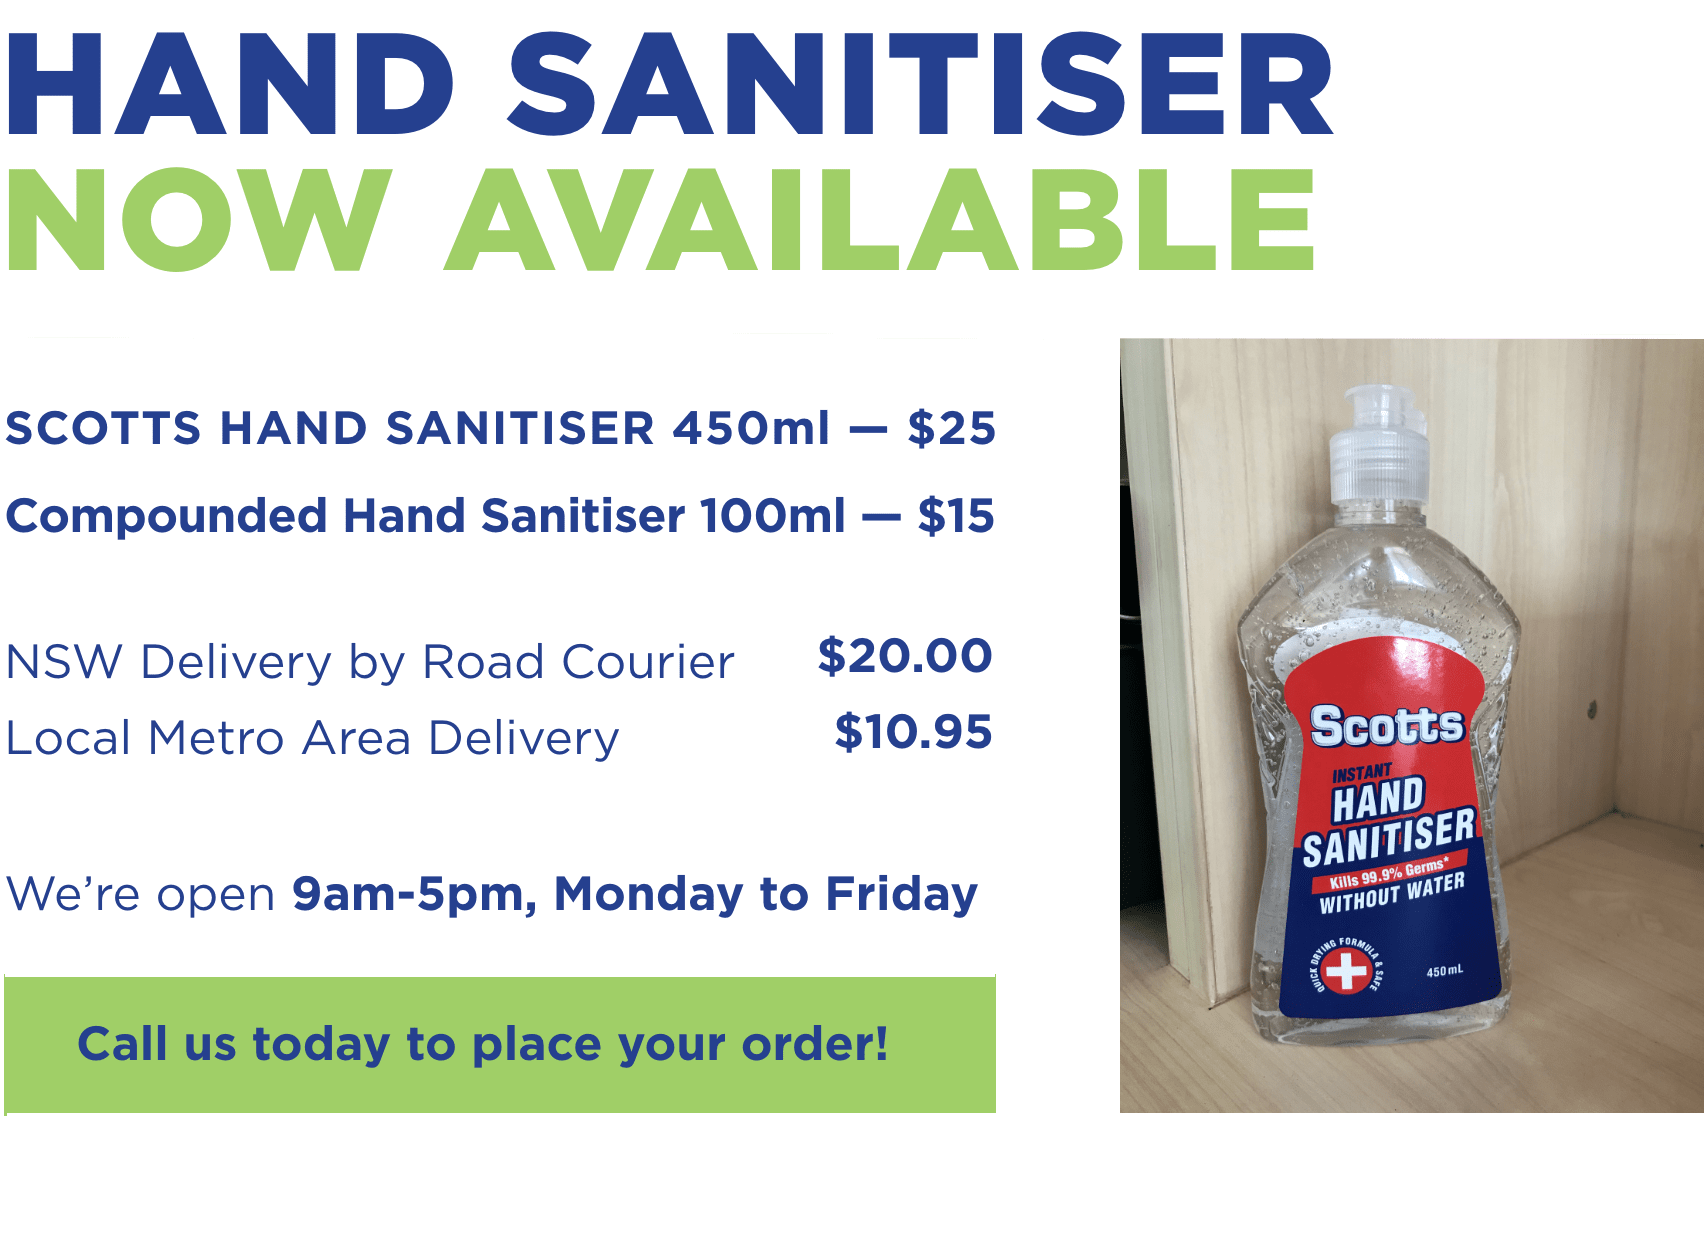 HAND SANITISER NOW AVAILABLE